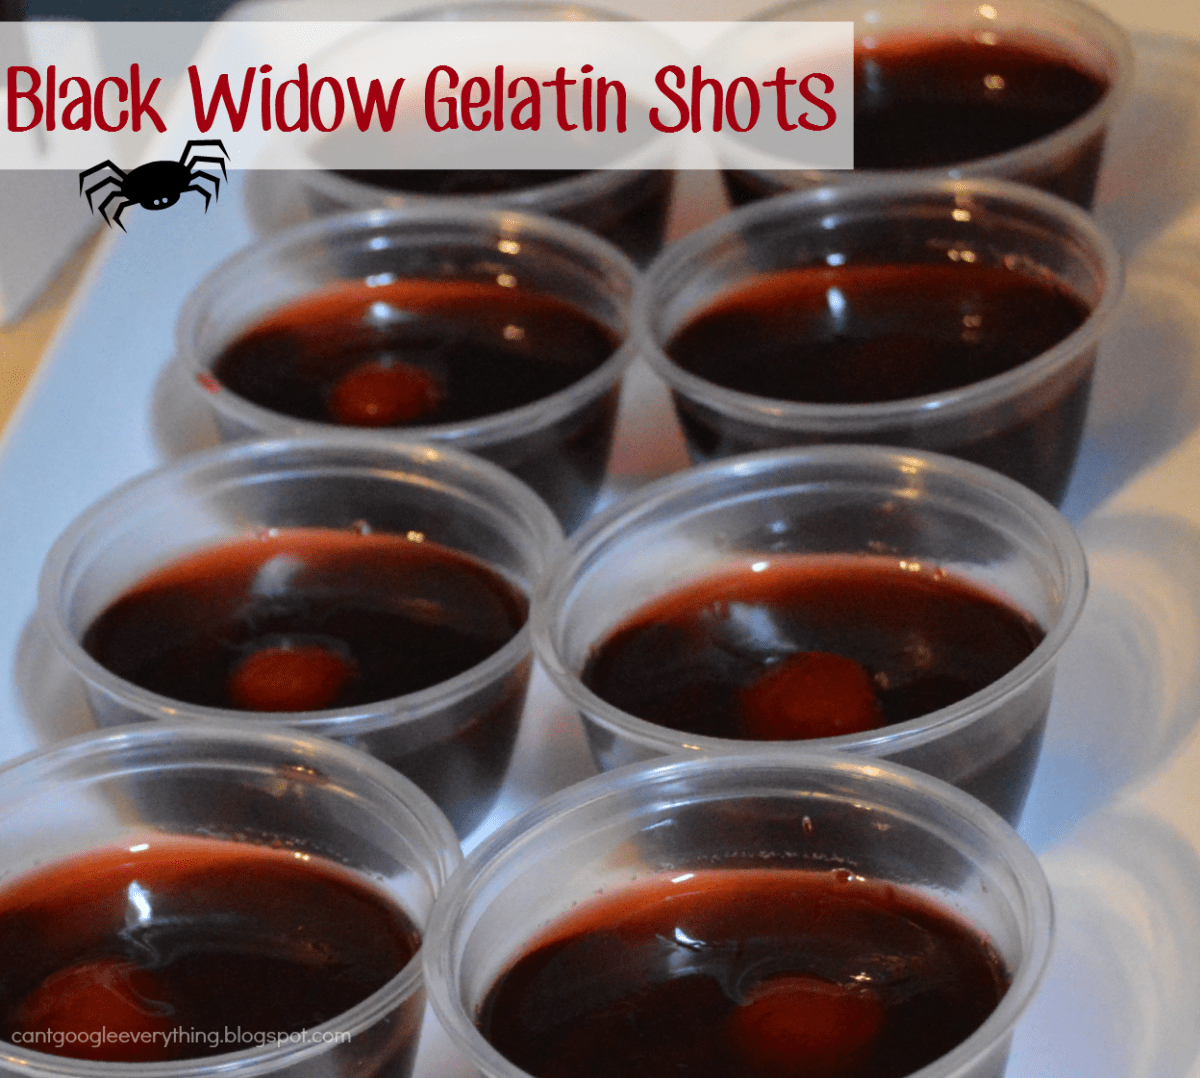 Black Widow Gelatin Shots